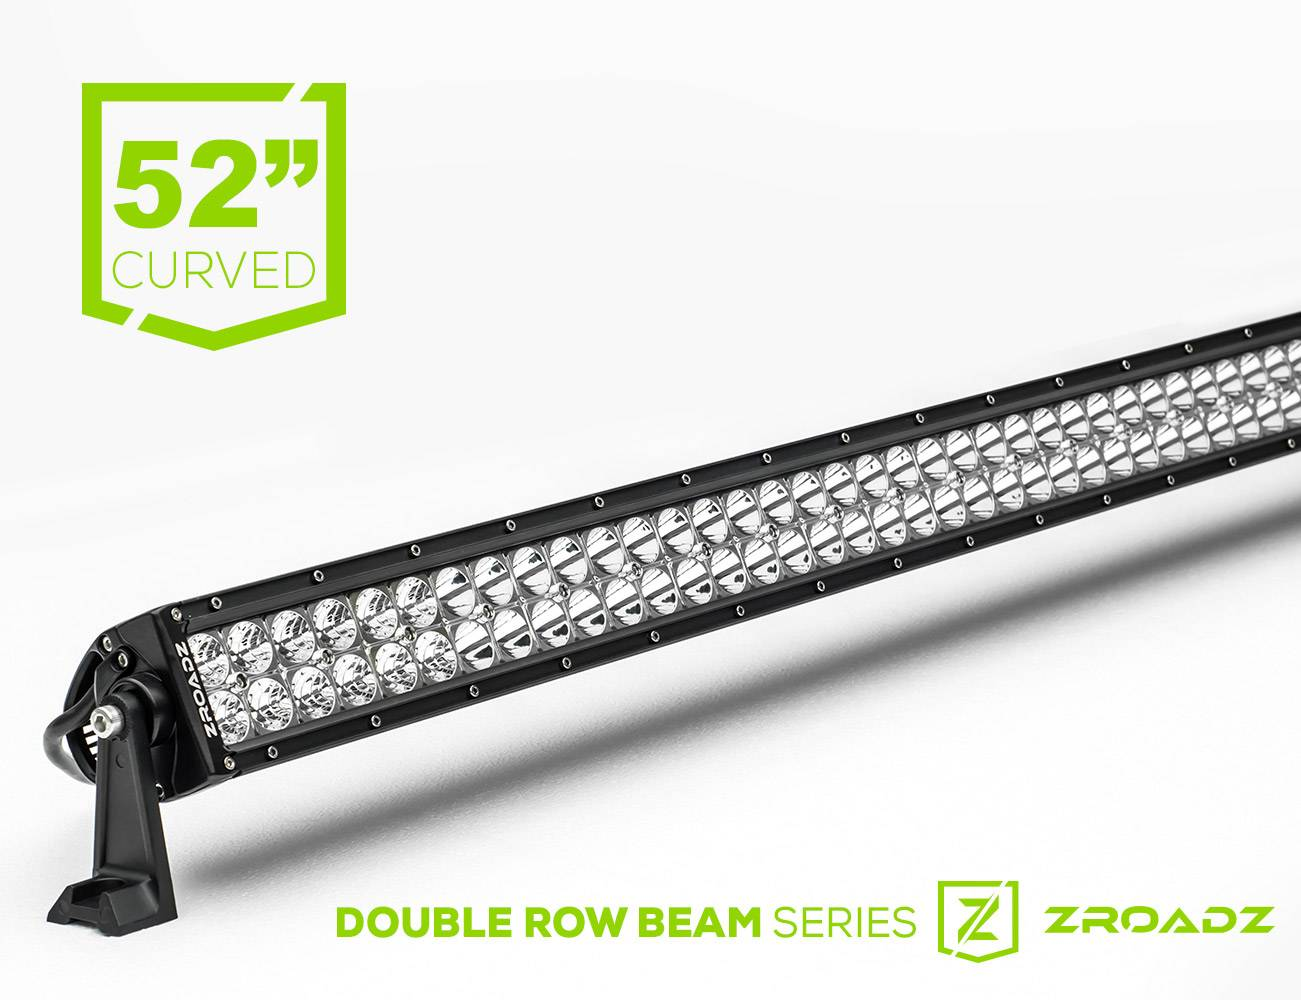 ZROADZ OFF ROAD PRODUCTS - 52 Inch LED Curved Double Row Light Bar - PN #Z30CBC14W300